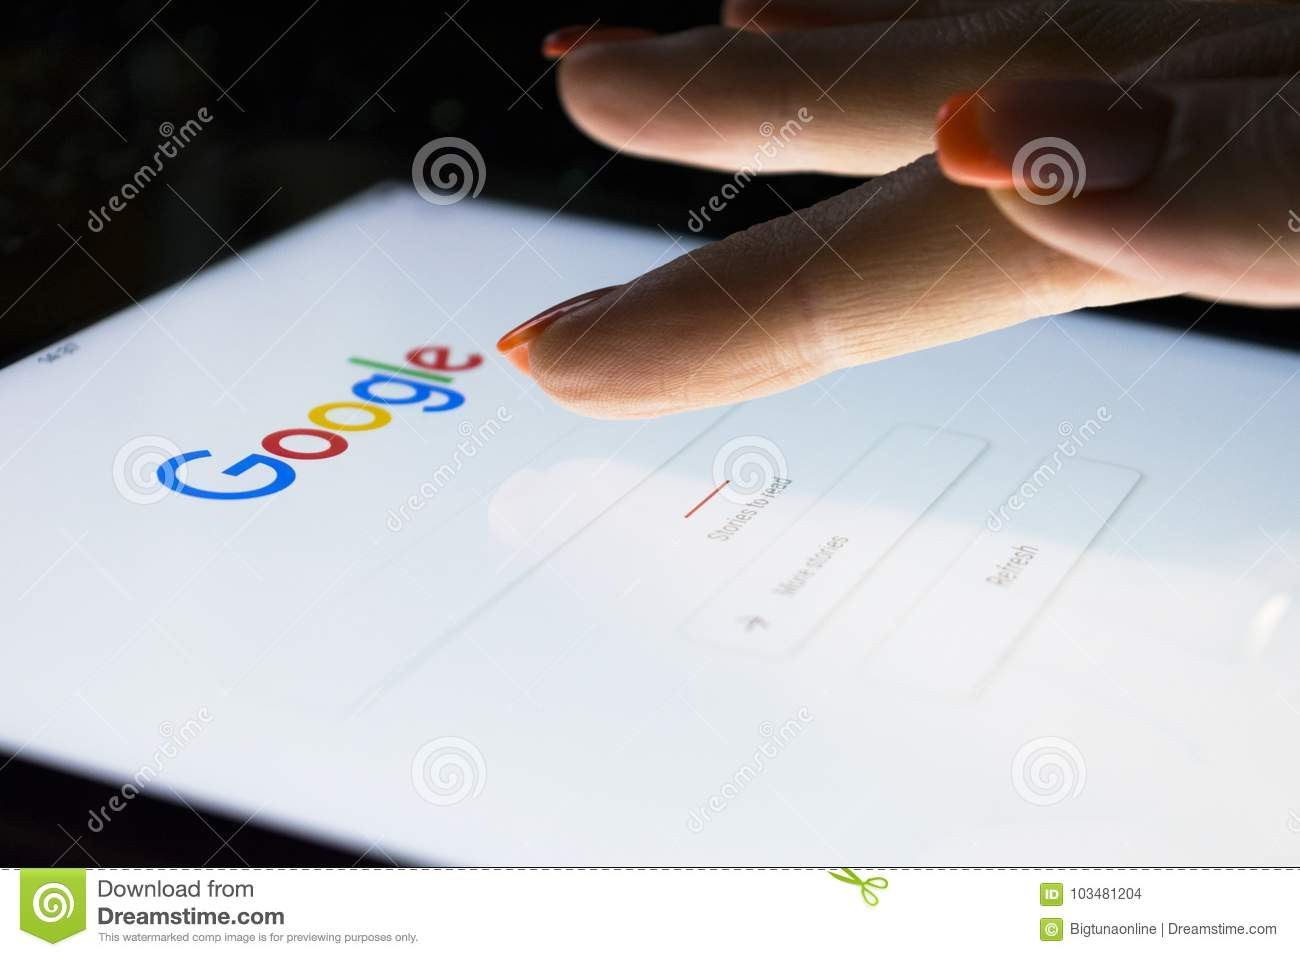 A woman`s hand is touching screen on tablet computer iPad Pro at night for searching on Google search engine. Google is the most